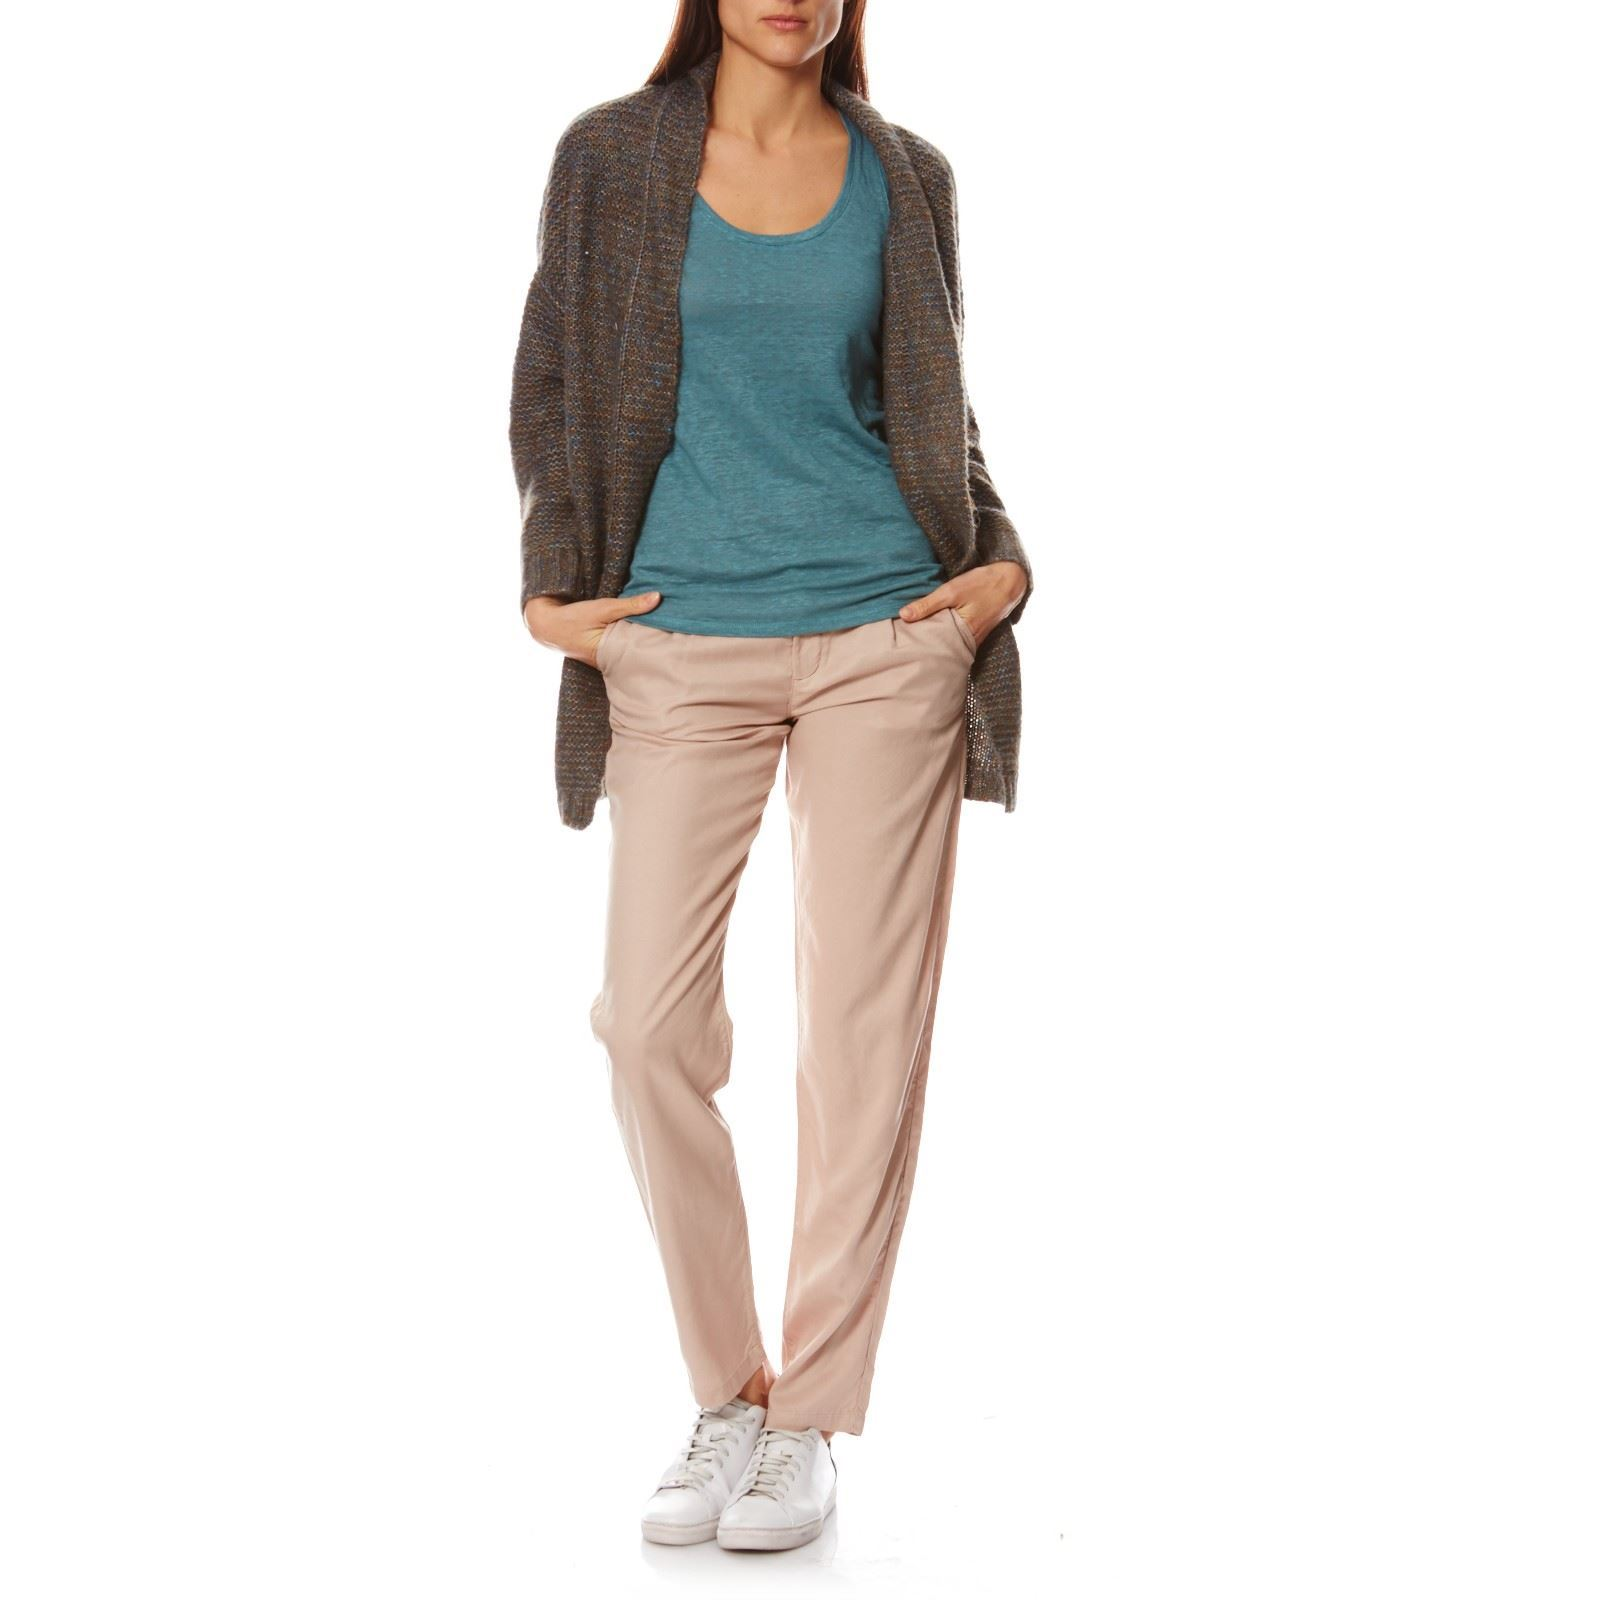 663d3a396f7 Best Mountain Pantalon - beige